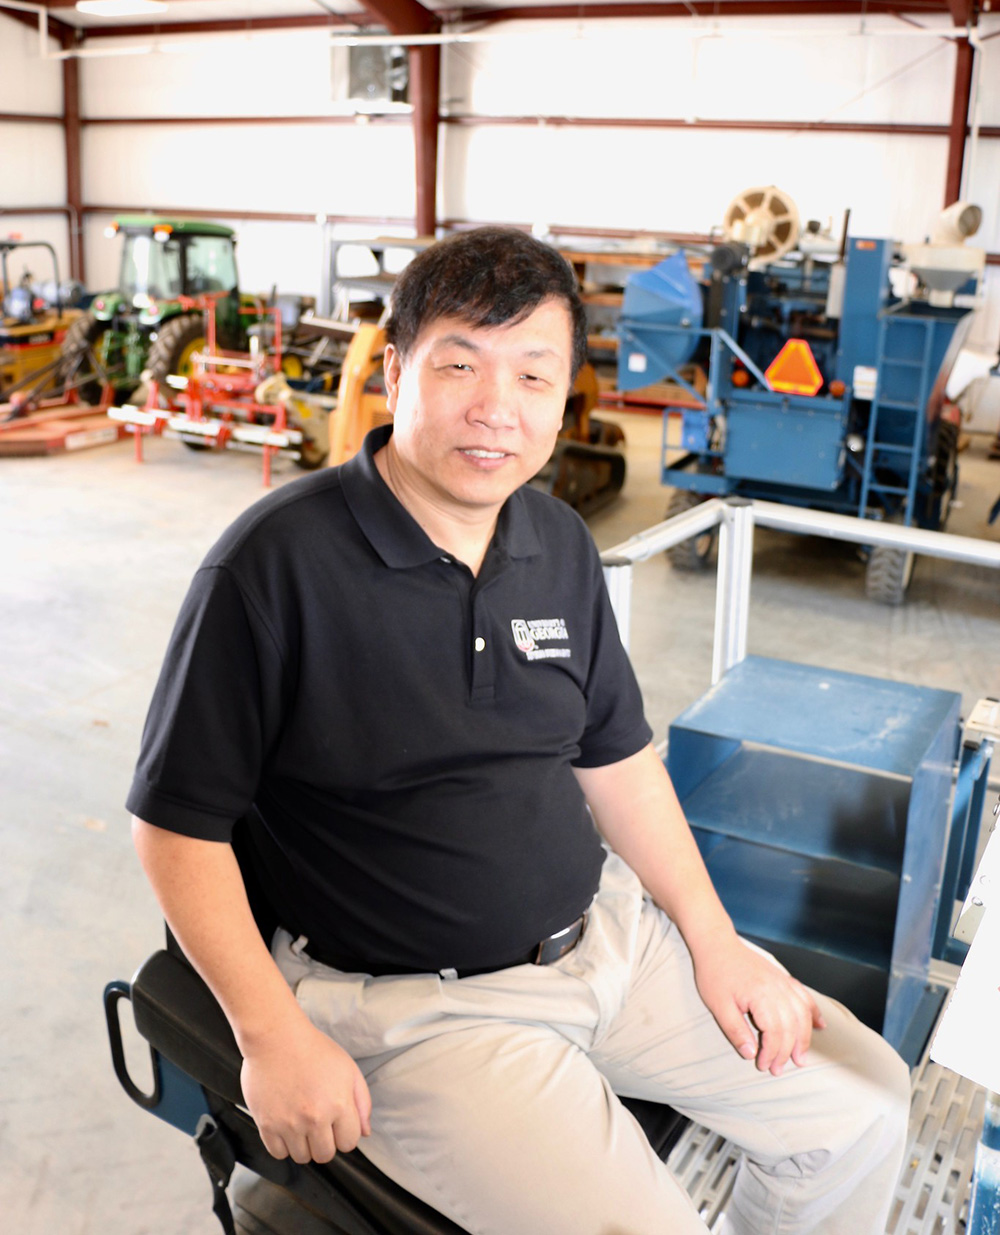 Since 2012, UGA soybean breeder Zenglu Li's lab has developed 12 soybean cultivars designed for the Southeastern climate that have been released for agricultural use.